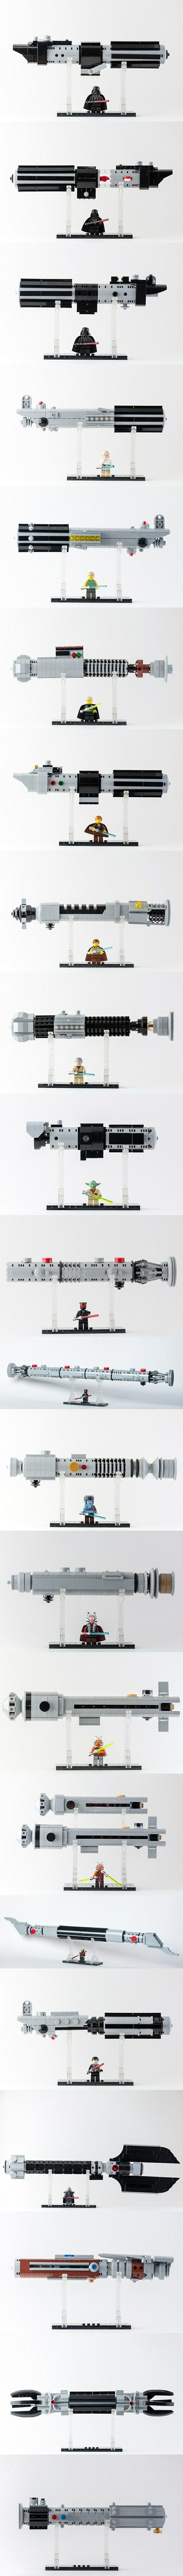 LEGO Star Wars Exposed Lightsabers